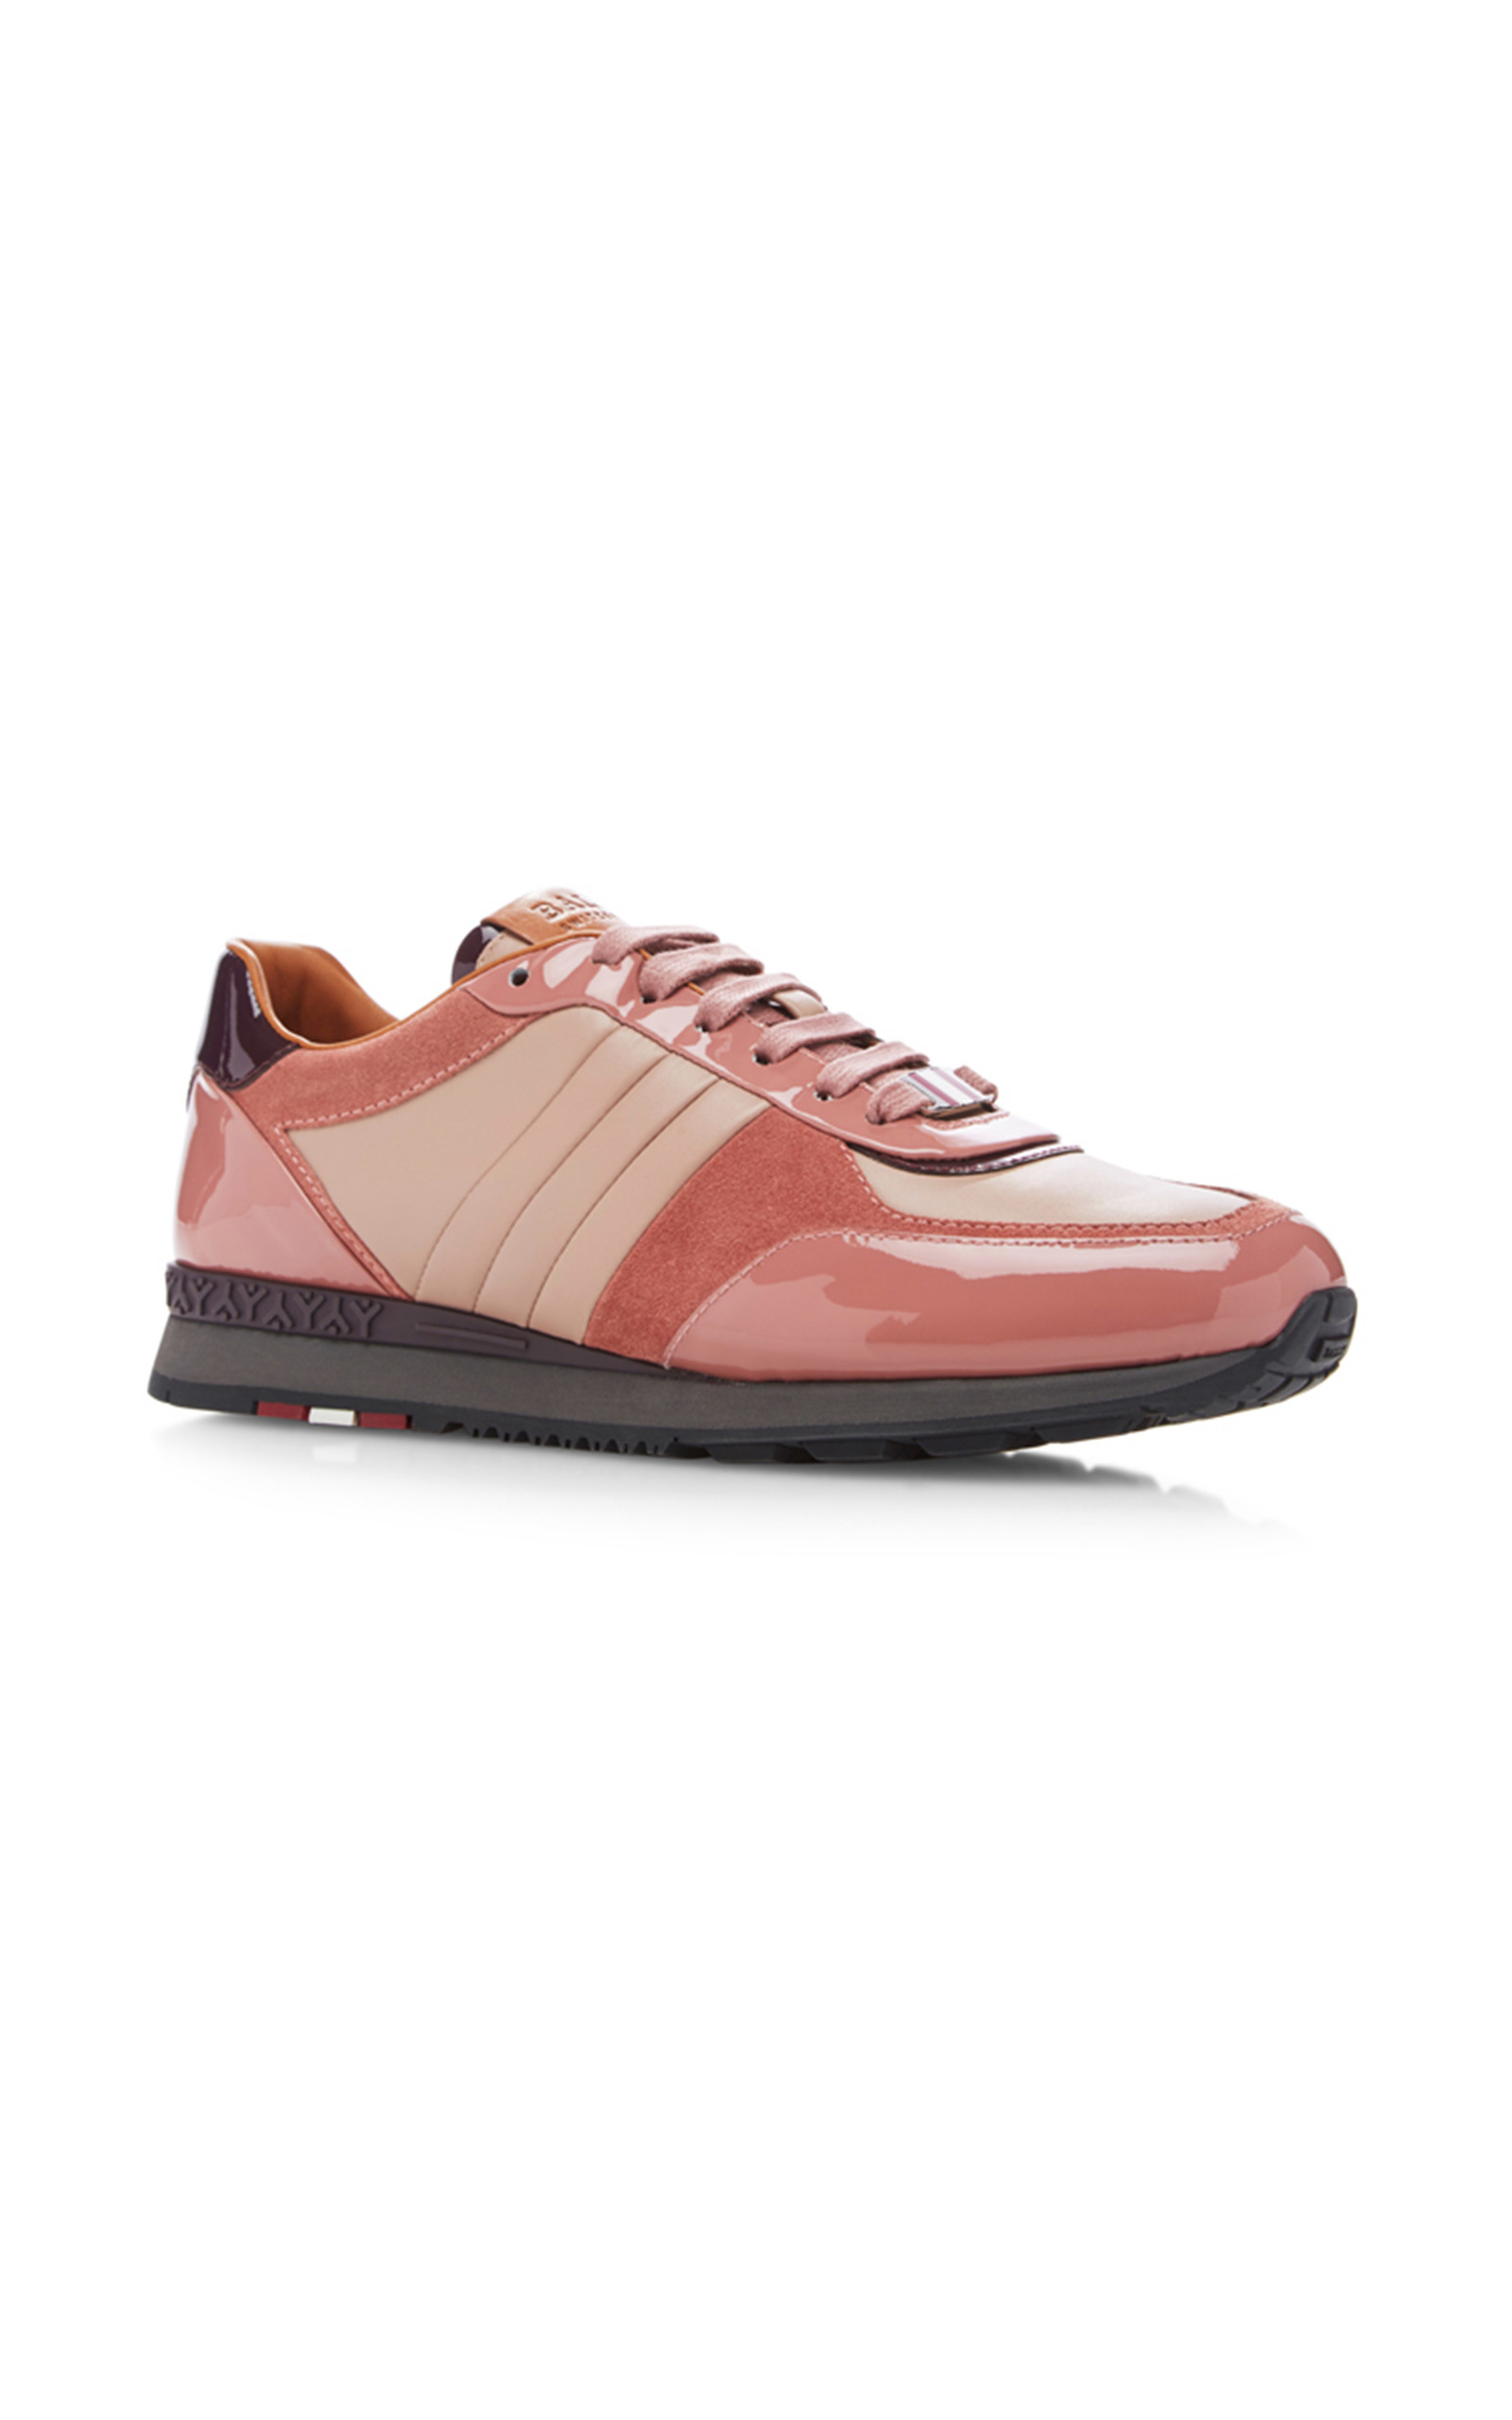 Bally Asyia sneakers buy cheap comfortable sale find great official online cheap recommend sale perfect aTlhGb2Vq